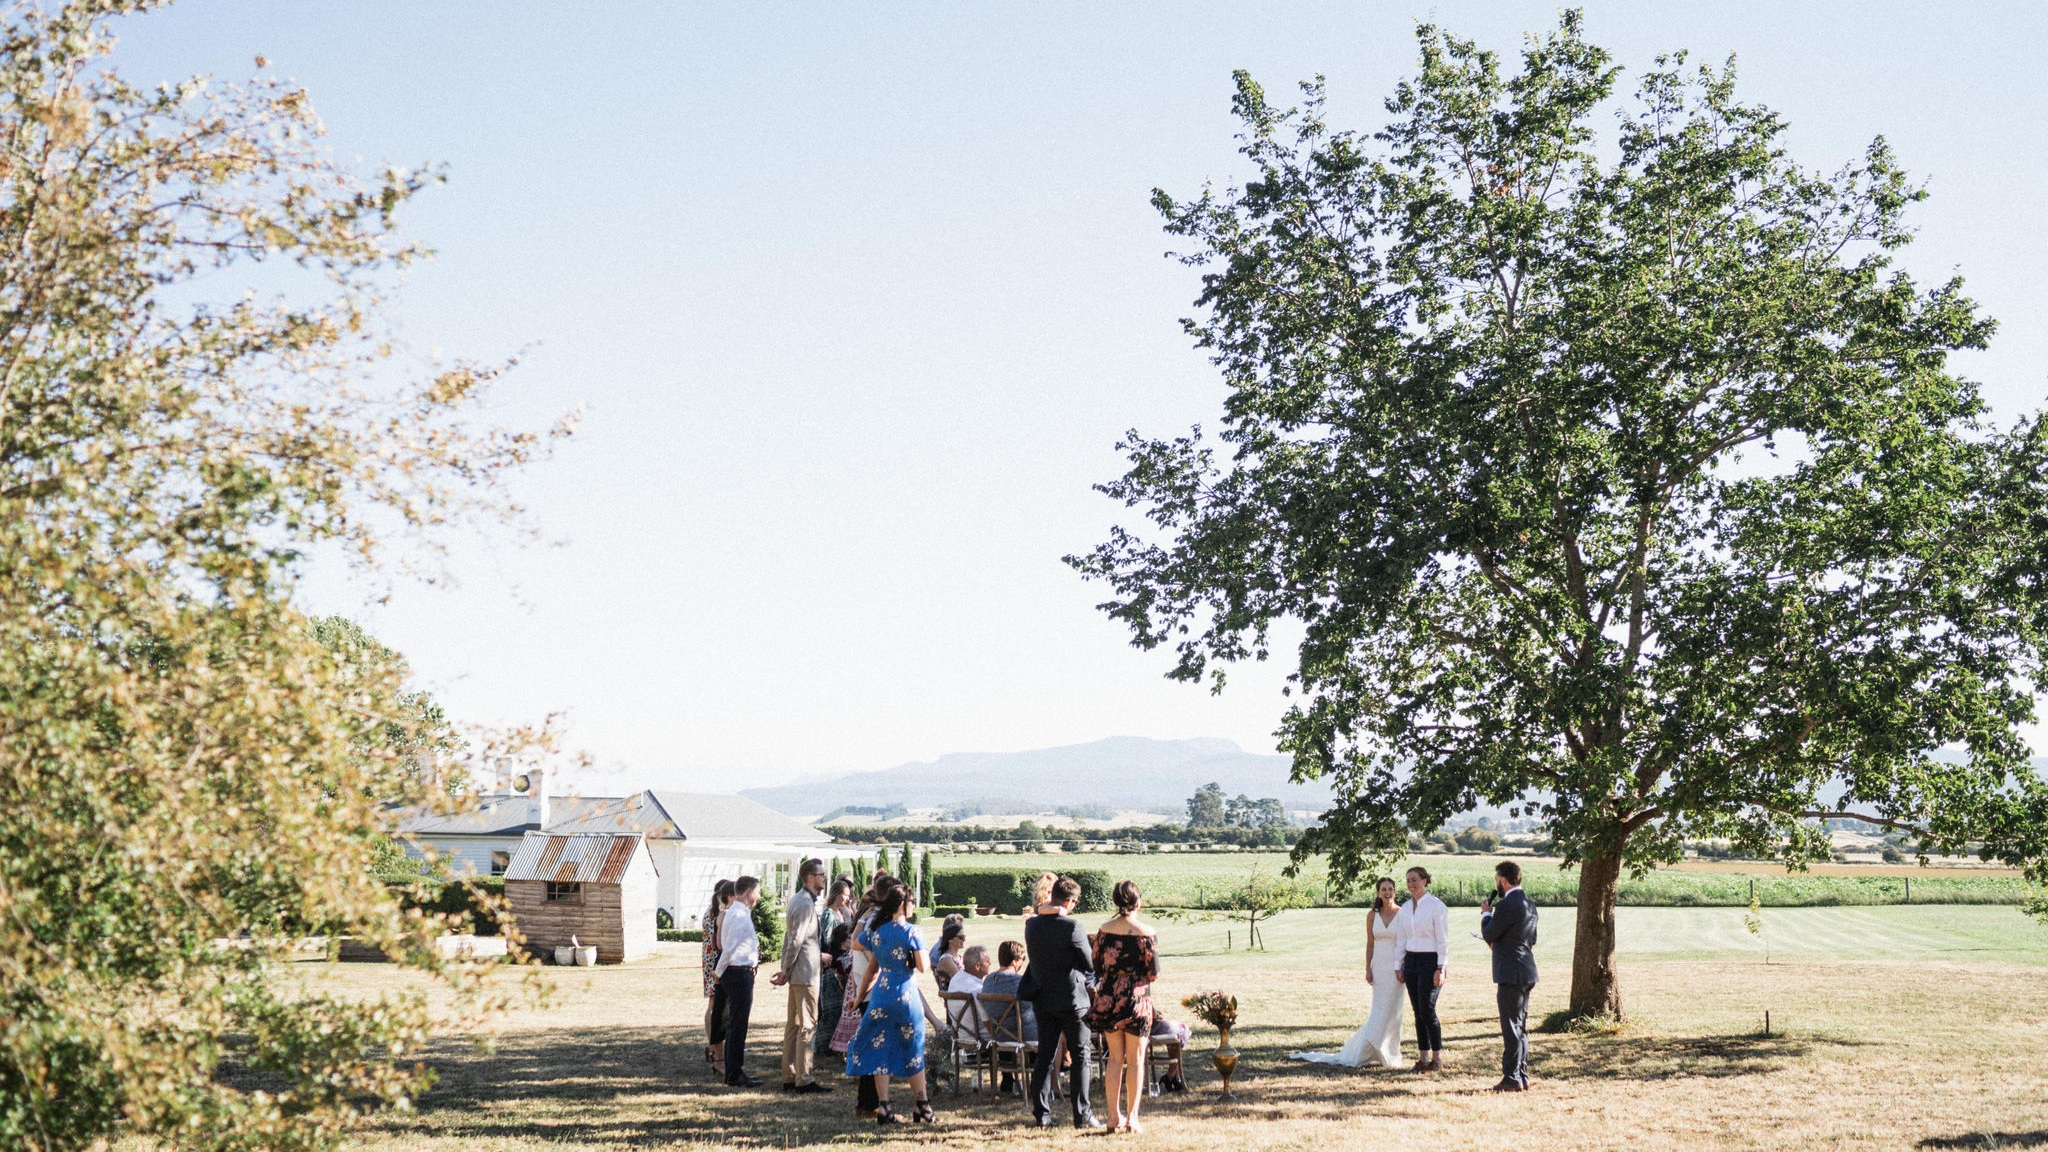 The beautiful setting for an intimate wedding. Photo credit:   Thom Stewart